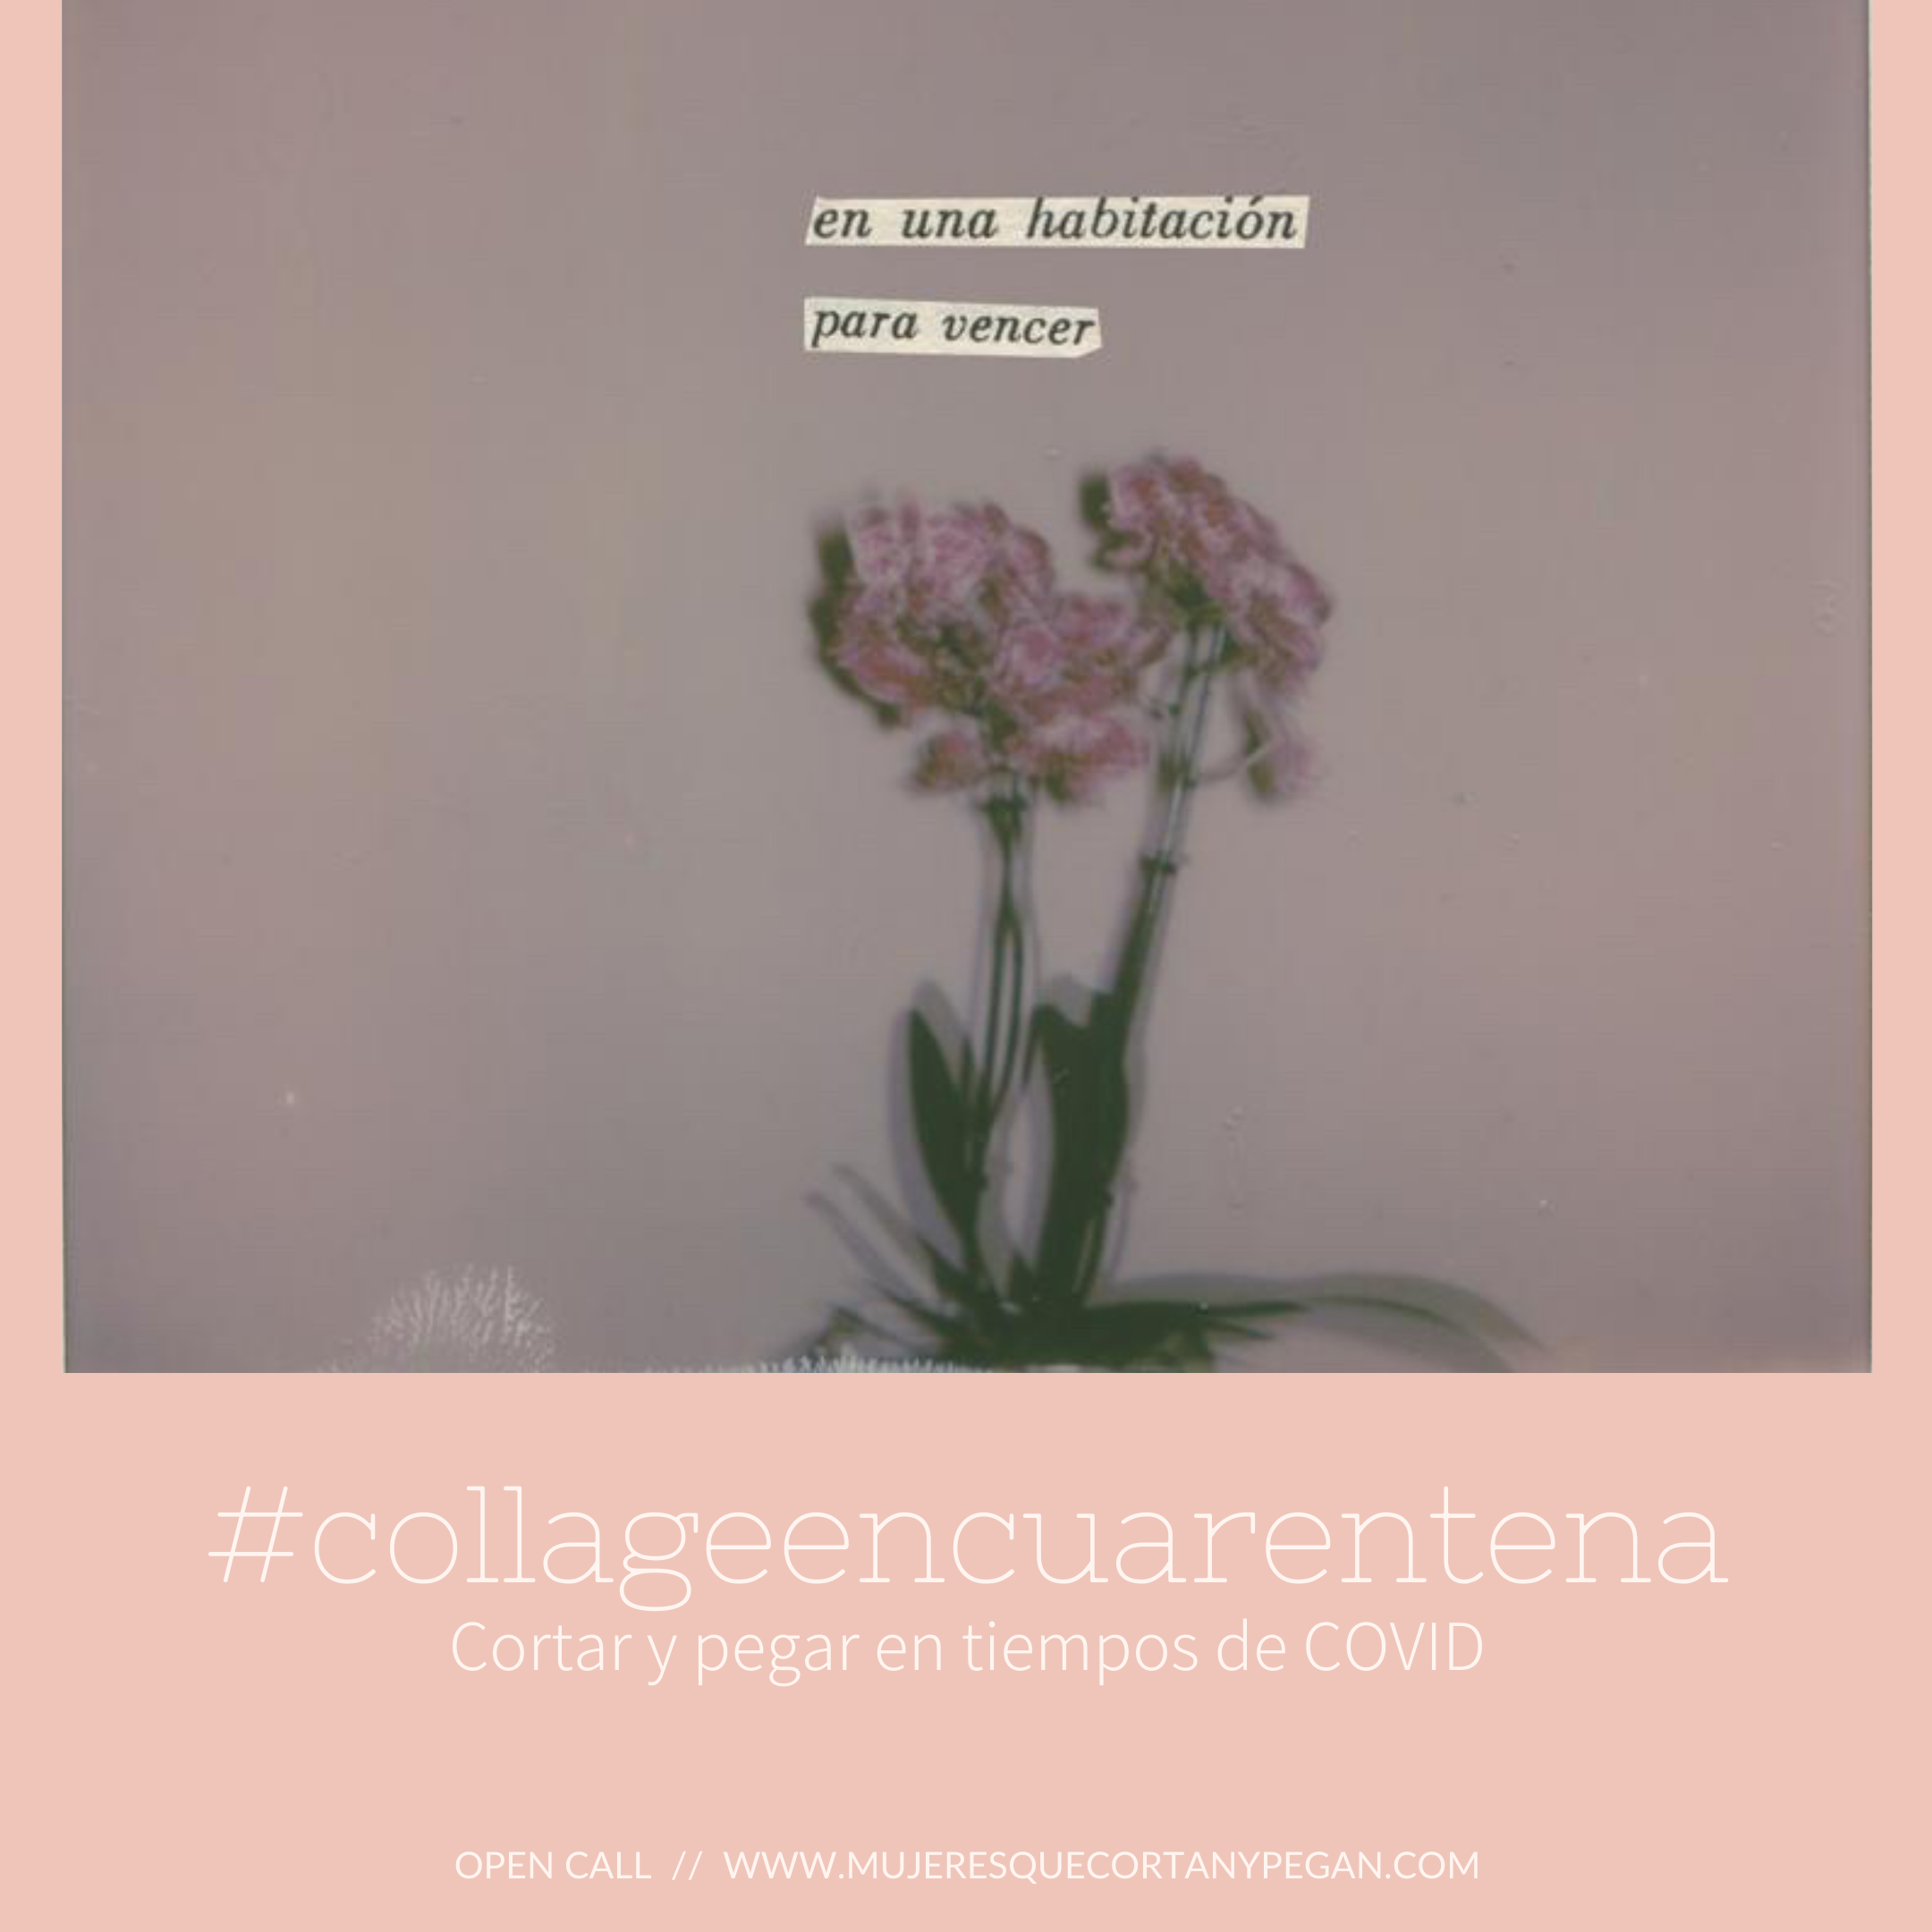 Convocatoria abierta / Open Call – #collageencuarentena